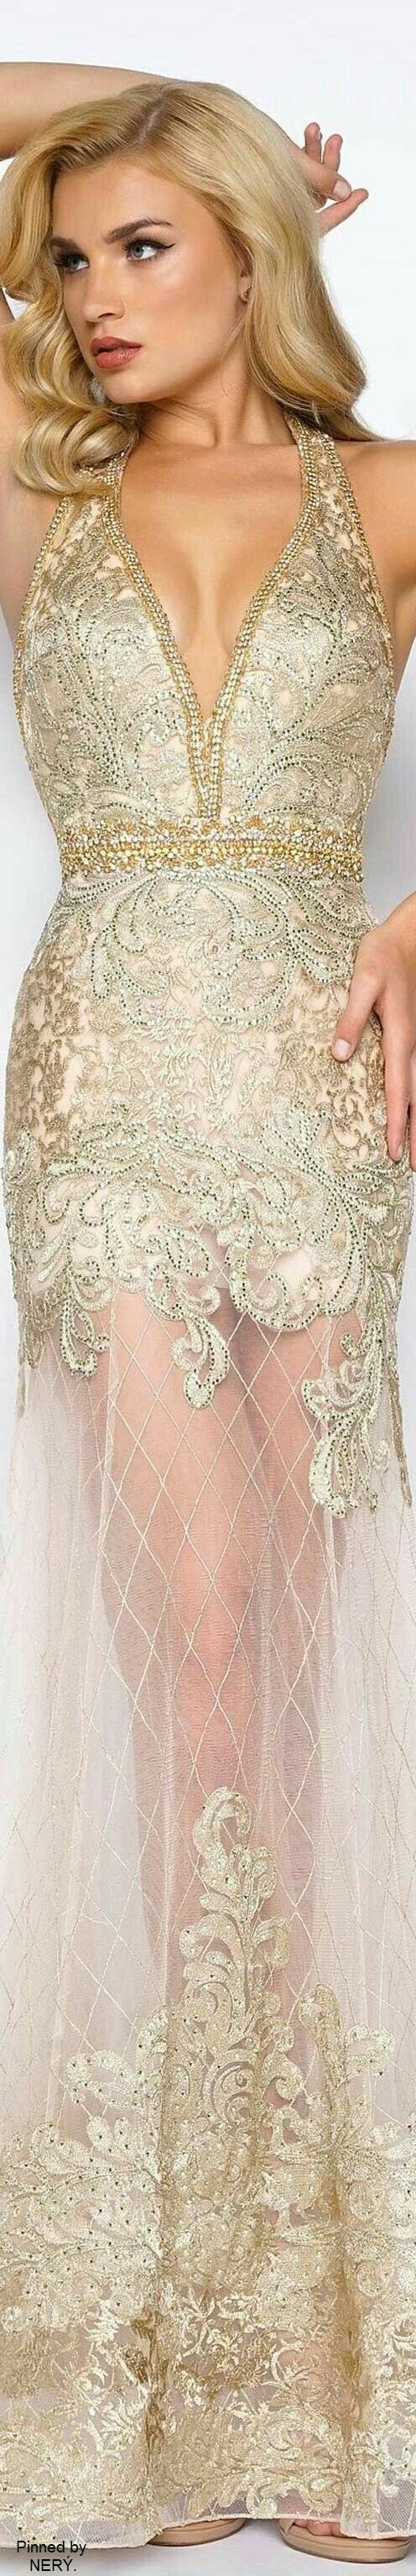 best Prom images on Pinterest Prom dresses Ballroom dress and